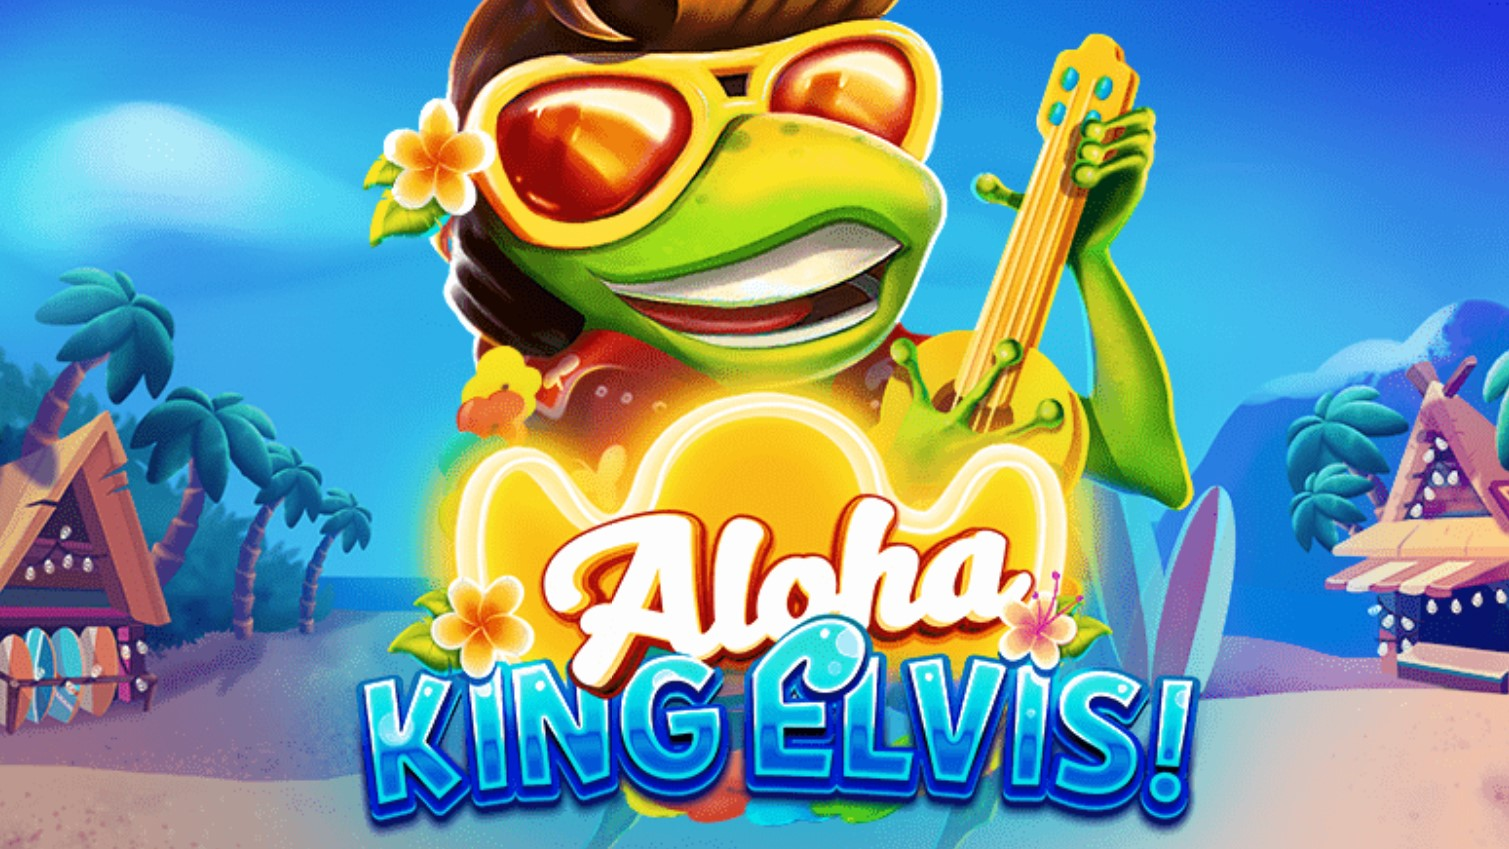 Elvis Frog has announced his latest performance in Hawaii in BGaming's sequel to its Elvis Frog in Vegas slot with Aloha King Elvis.